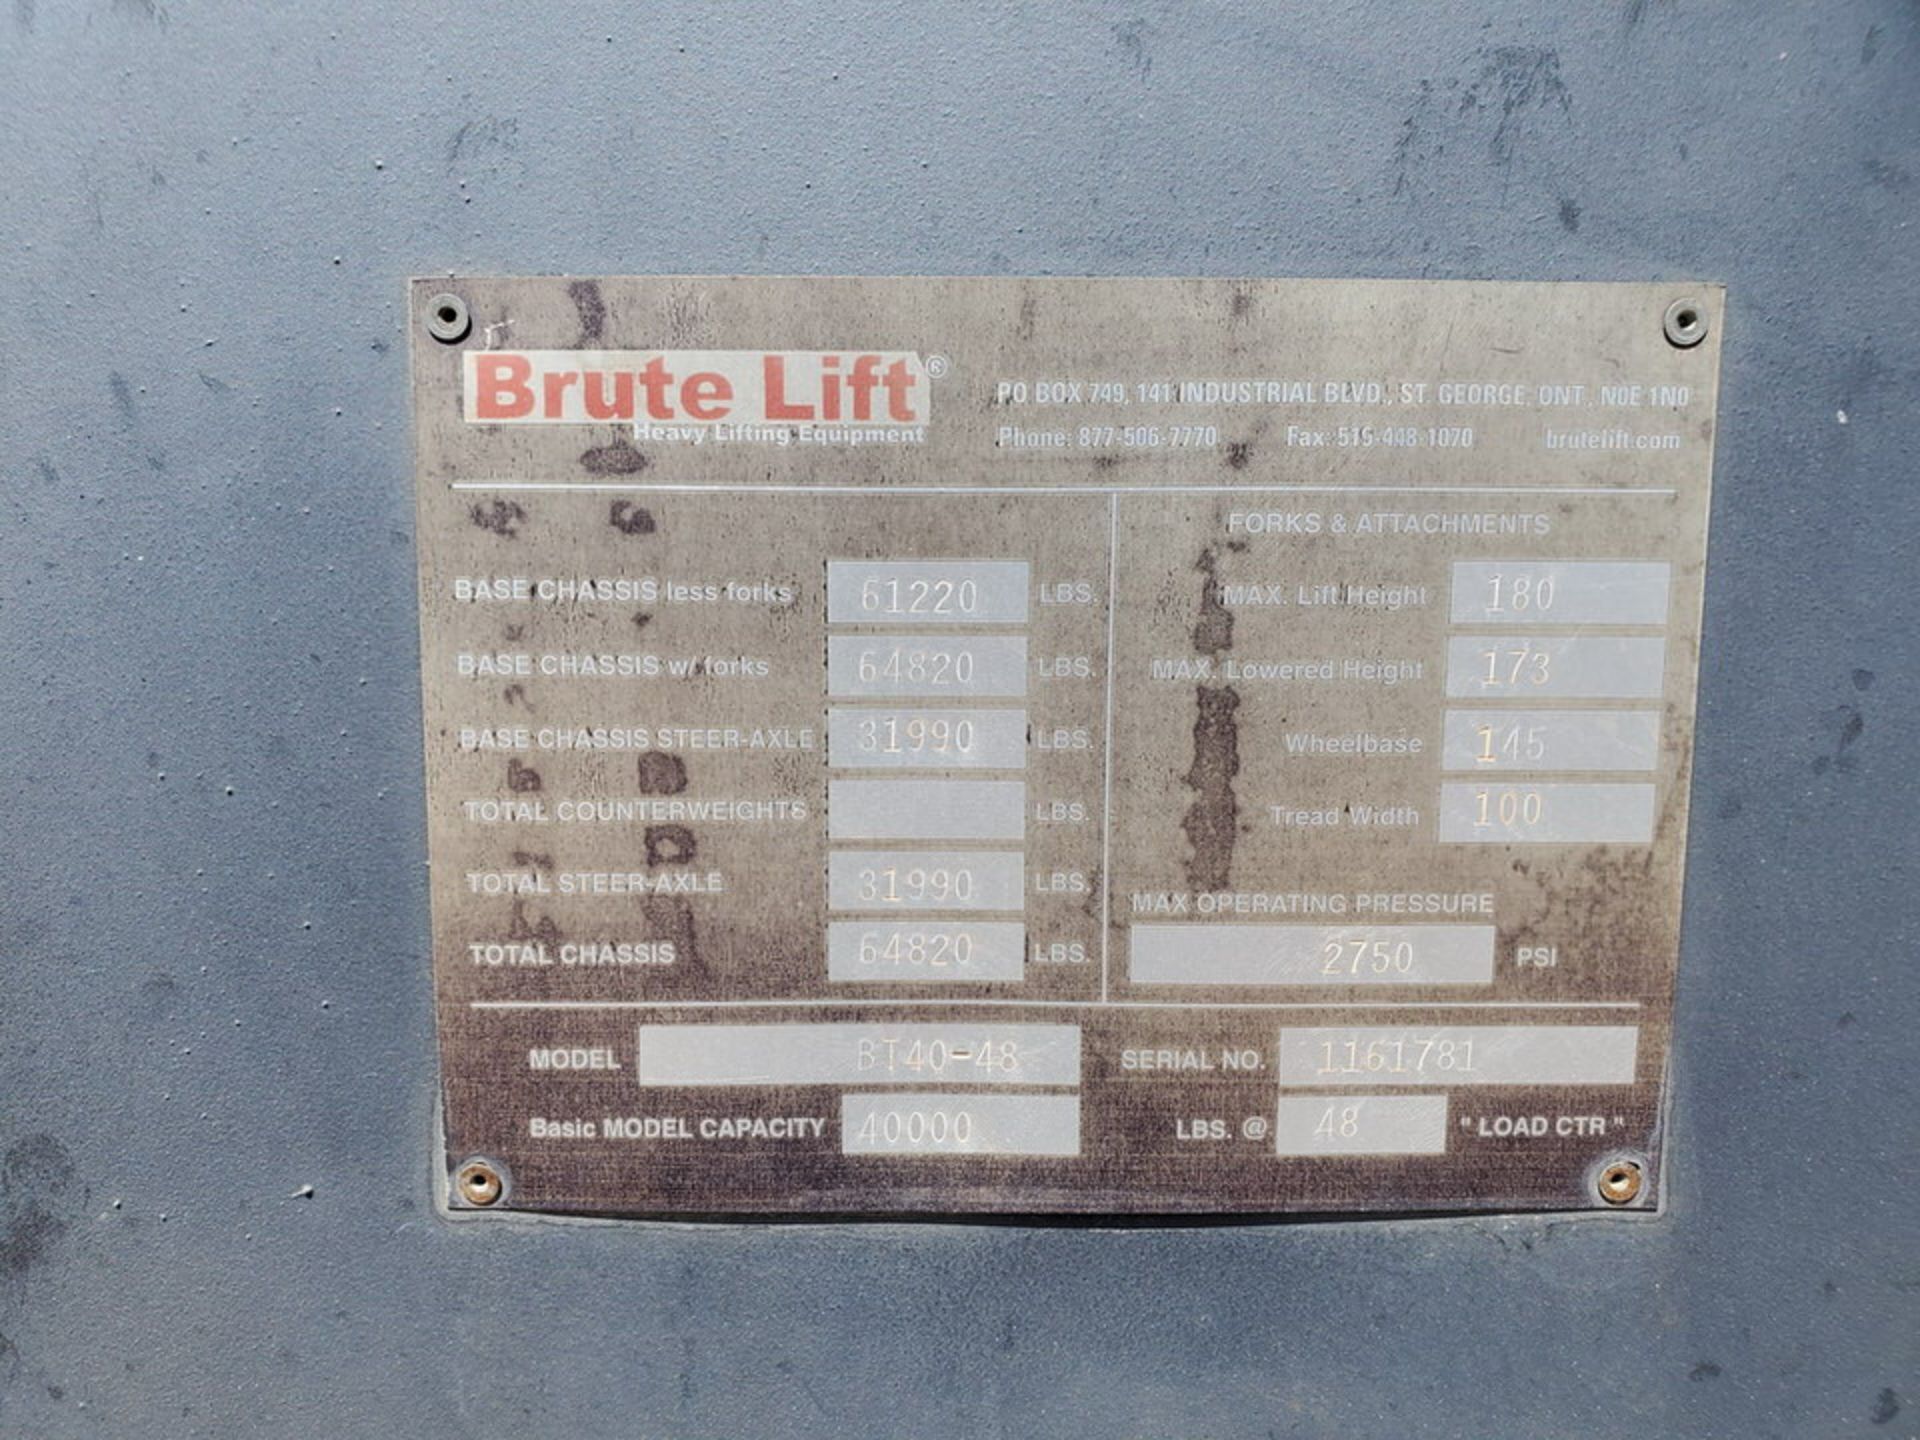 2012 Brute Lift BT40-48 Forklift 40H Cap., Engine Hrs: 3,389.3 - Image 16 of 17